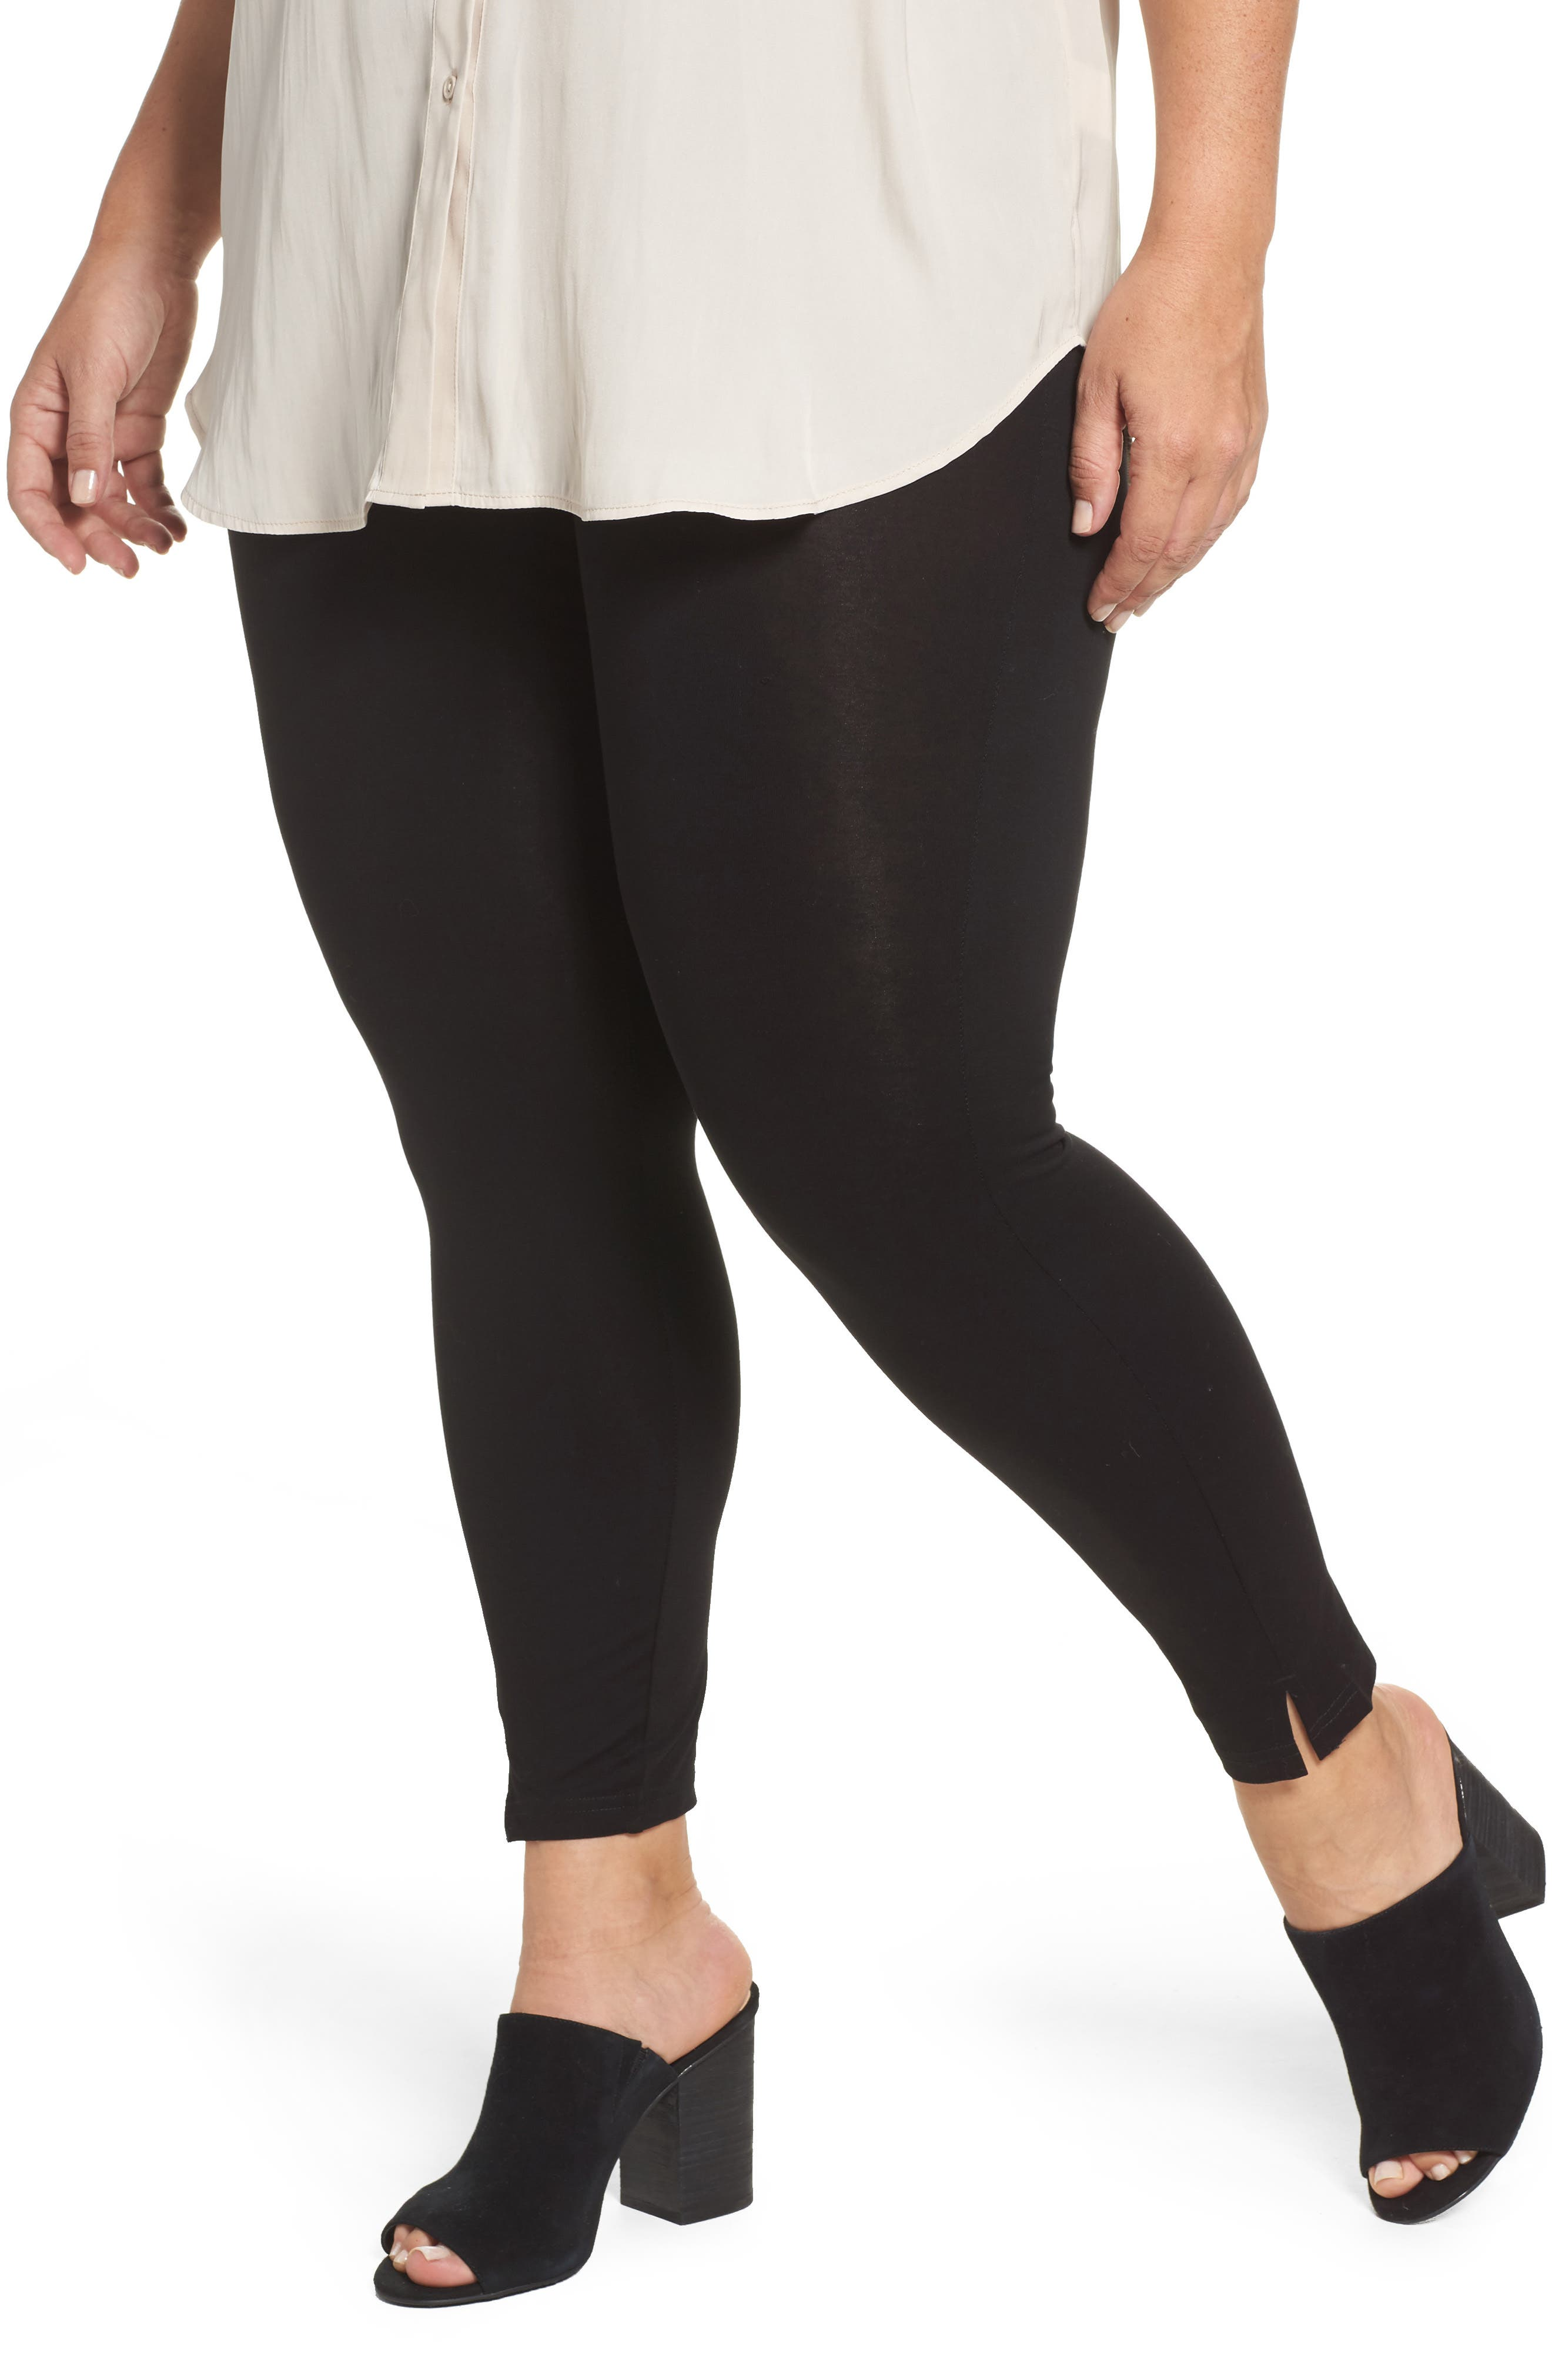 Hue Mercerized Cotton Leggings (Plus Size)